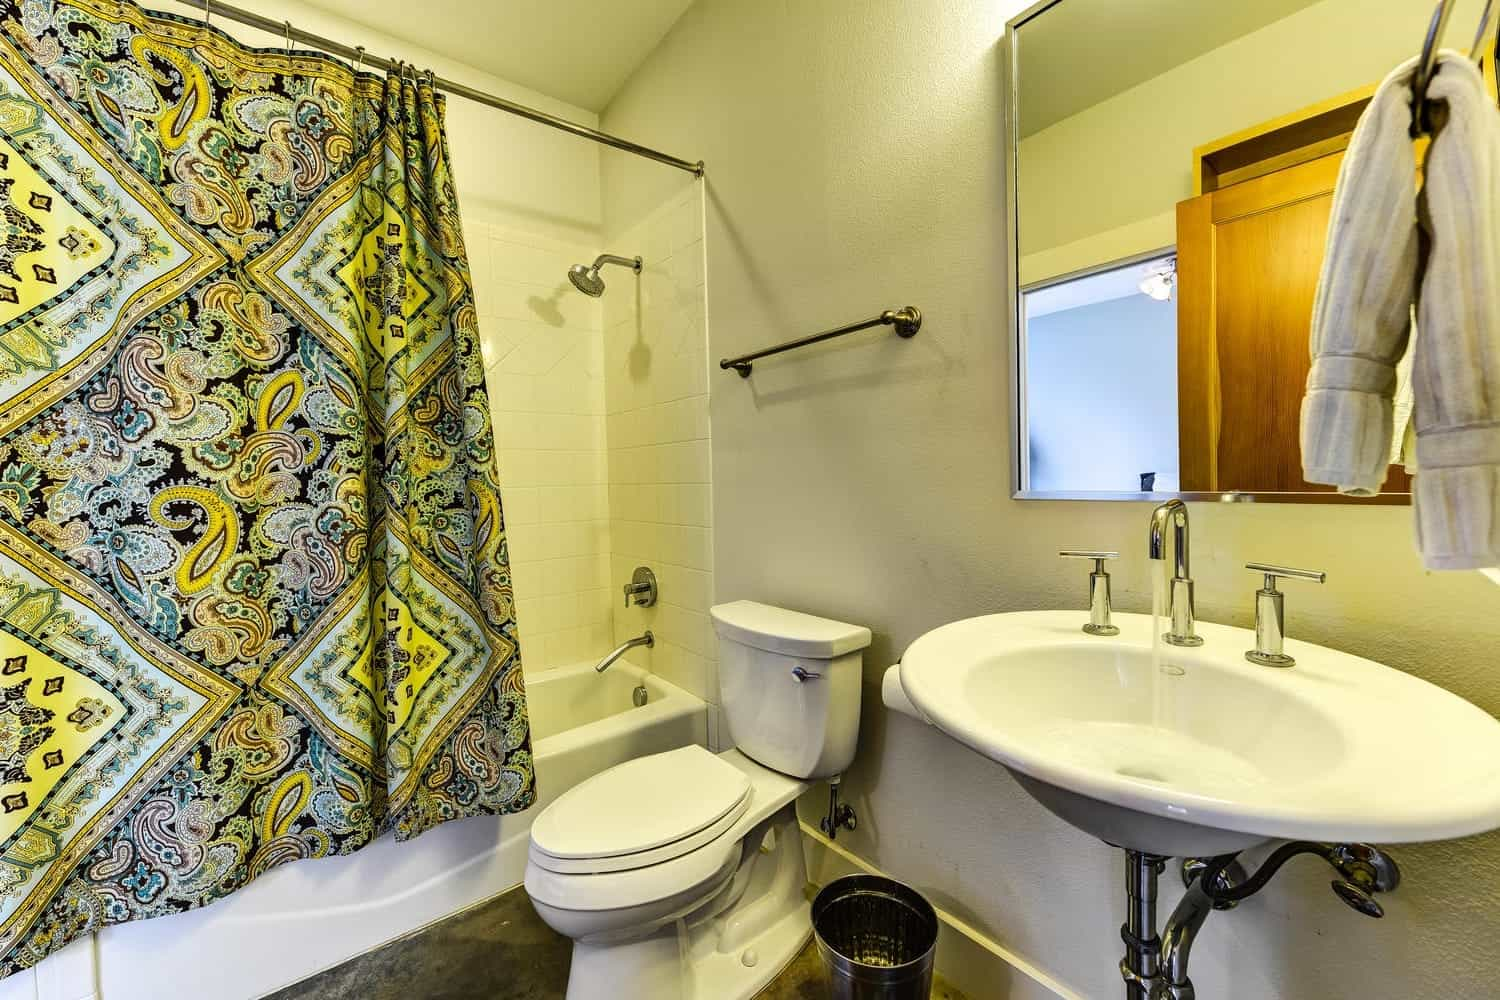 Small Contemporary Bathroom With Bold Colorful Graphic Shower Curtain (View 3 of 14)